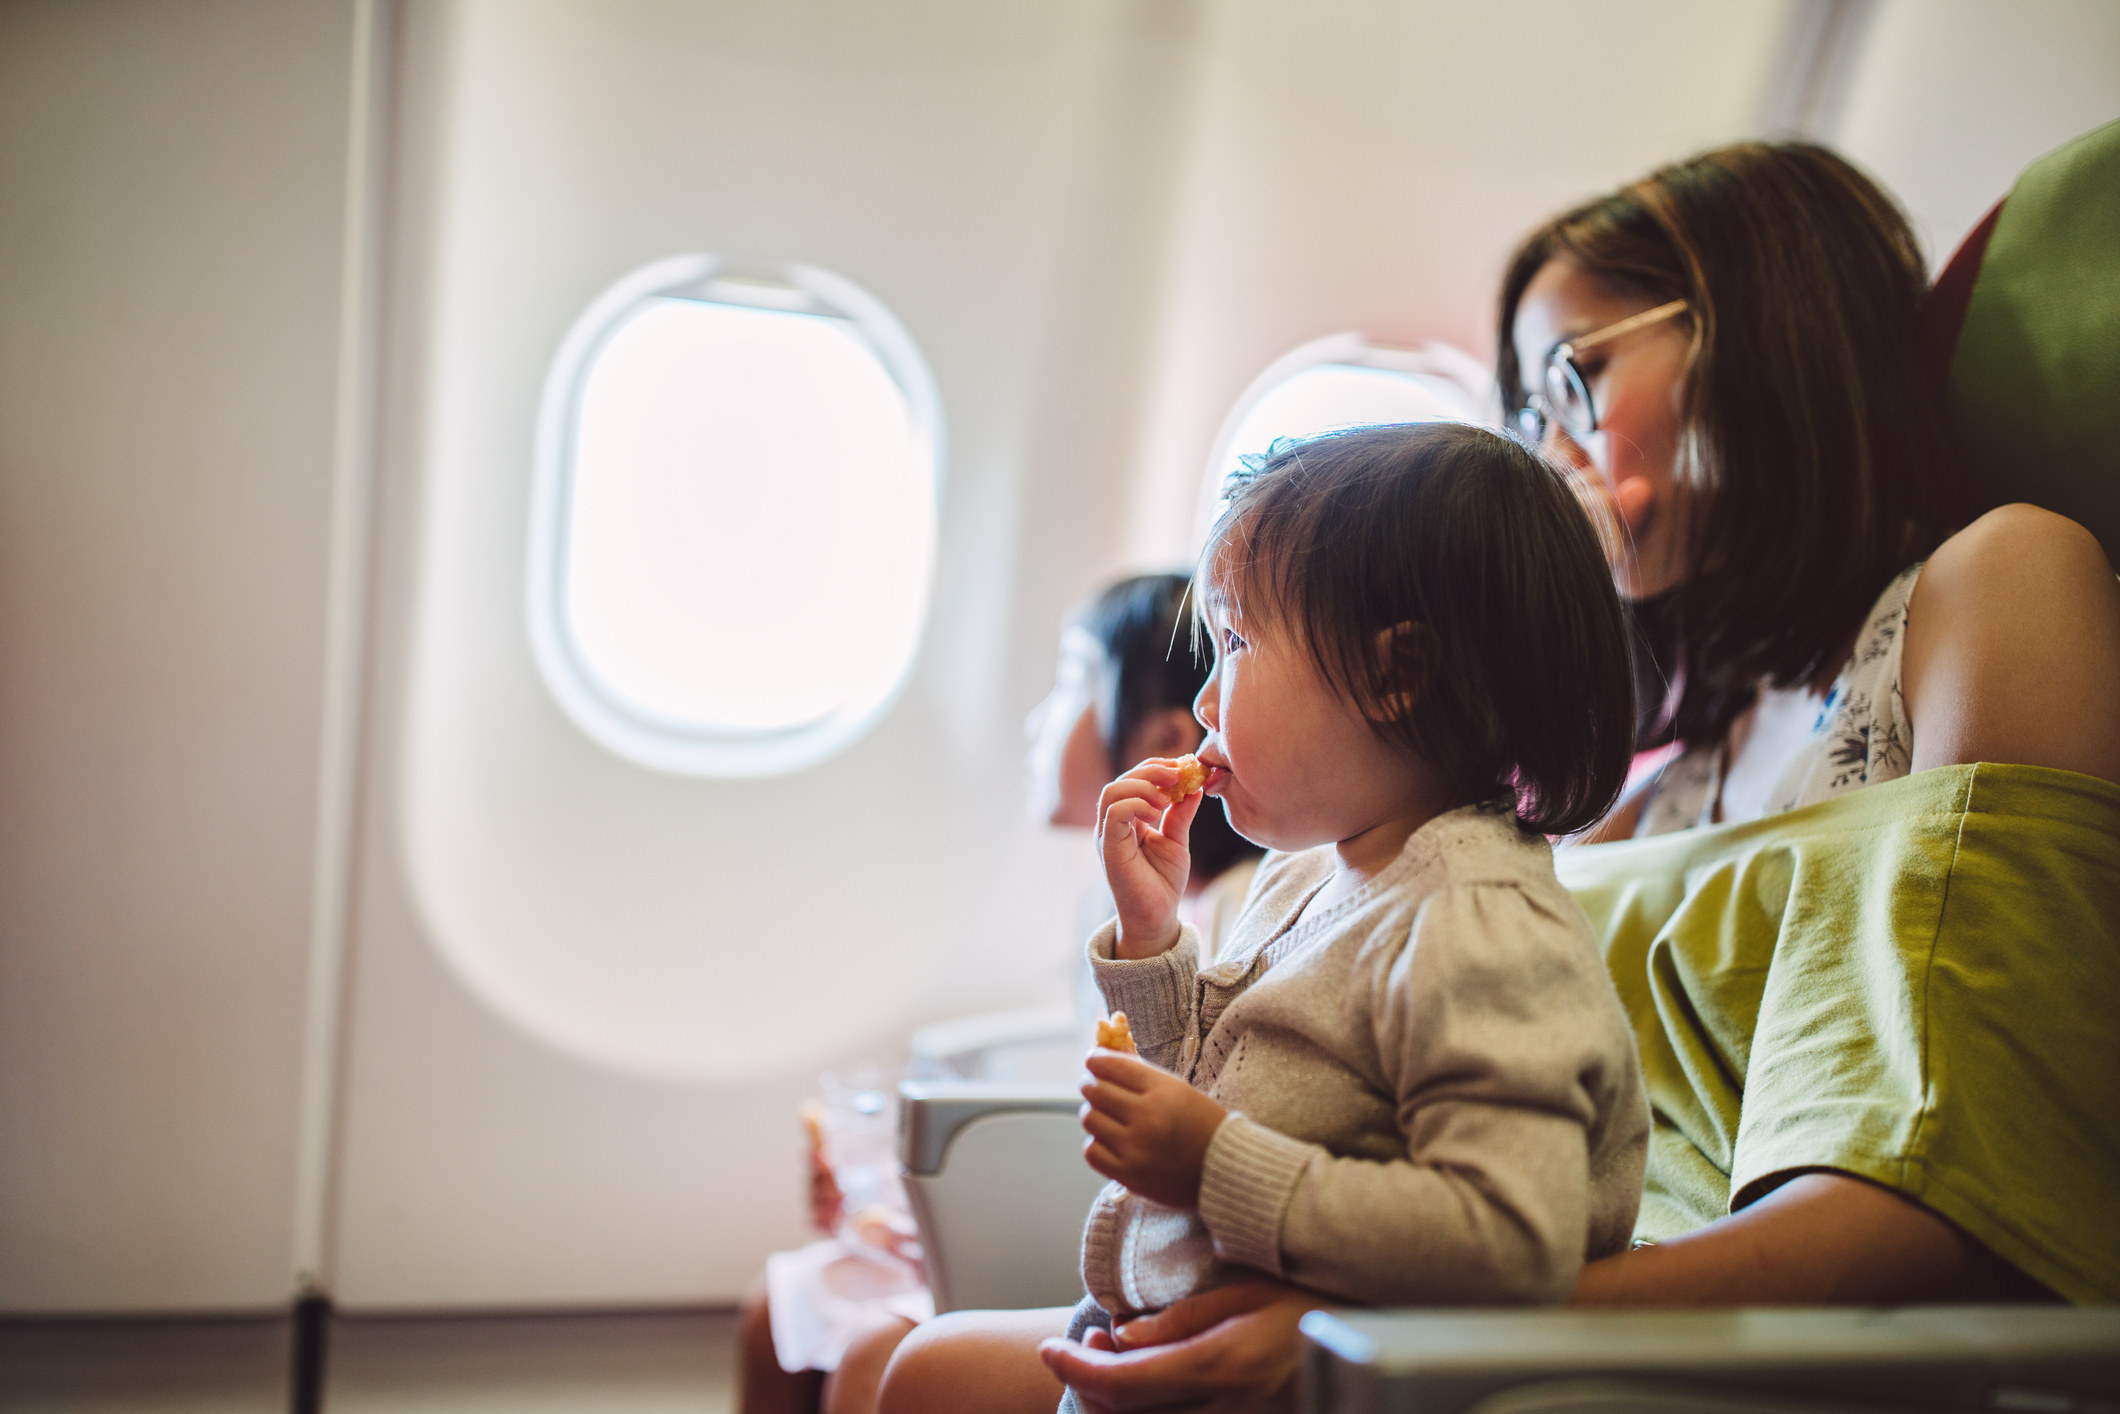 A mom feeding her baby on an airplane